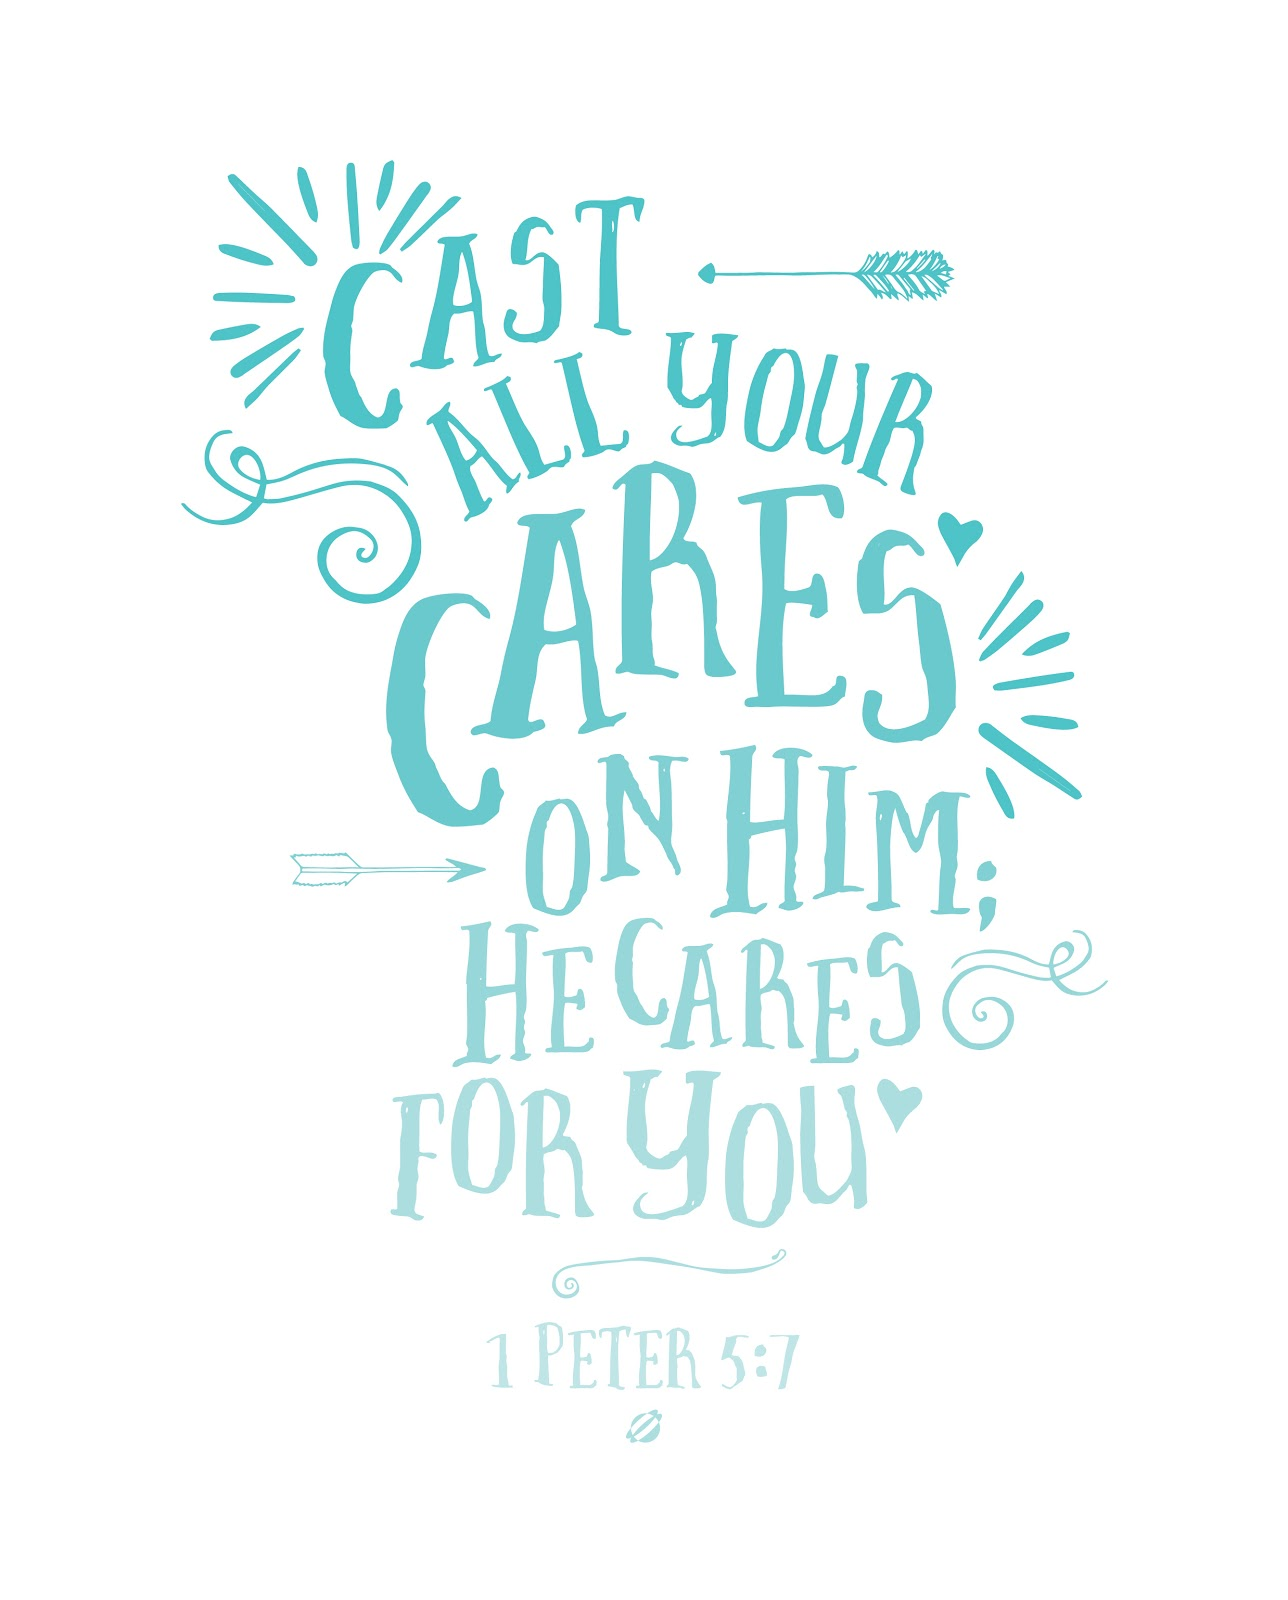 LostBumblebee ©2014 Cast Your Cares 1 Peter 5:7 FREE PRINTABLE- personal use only